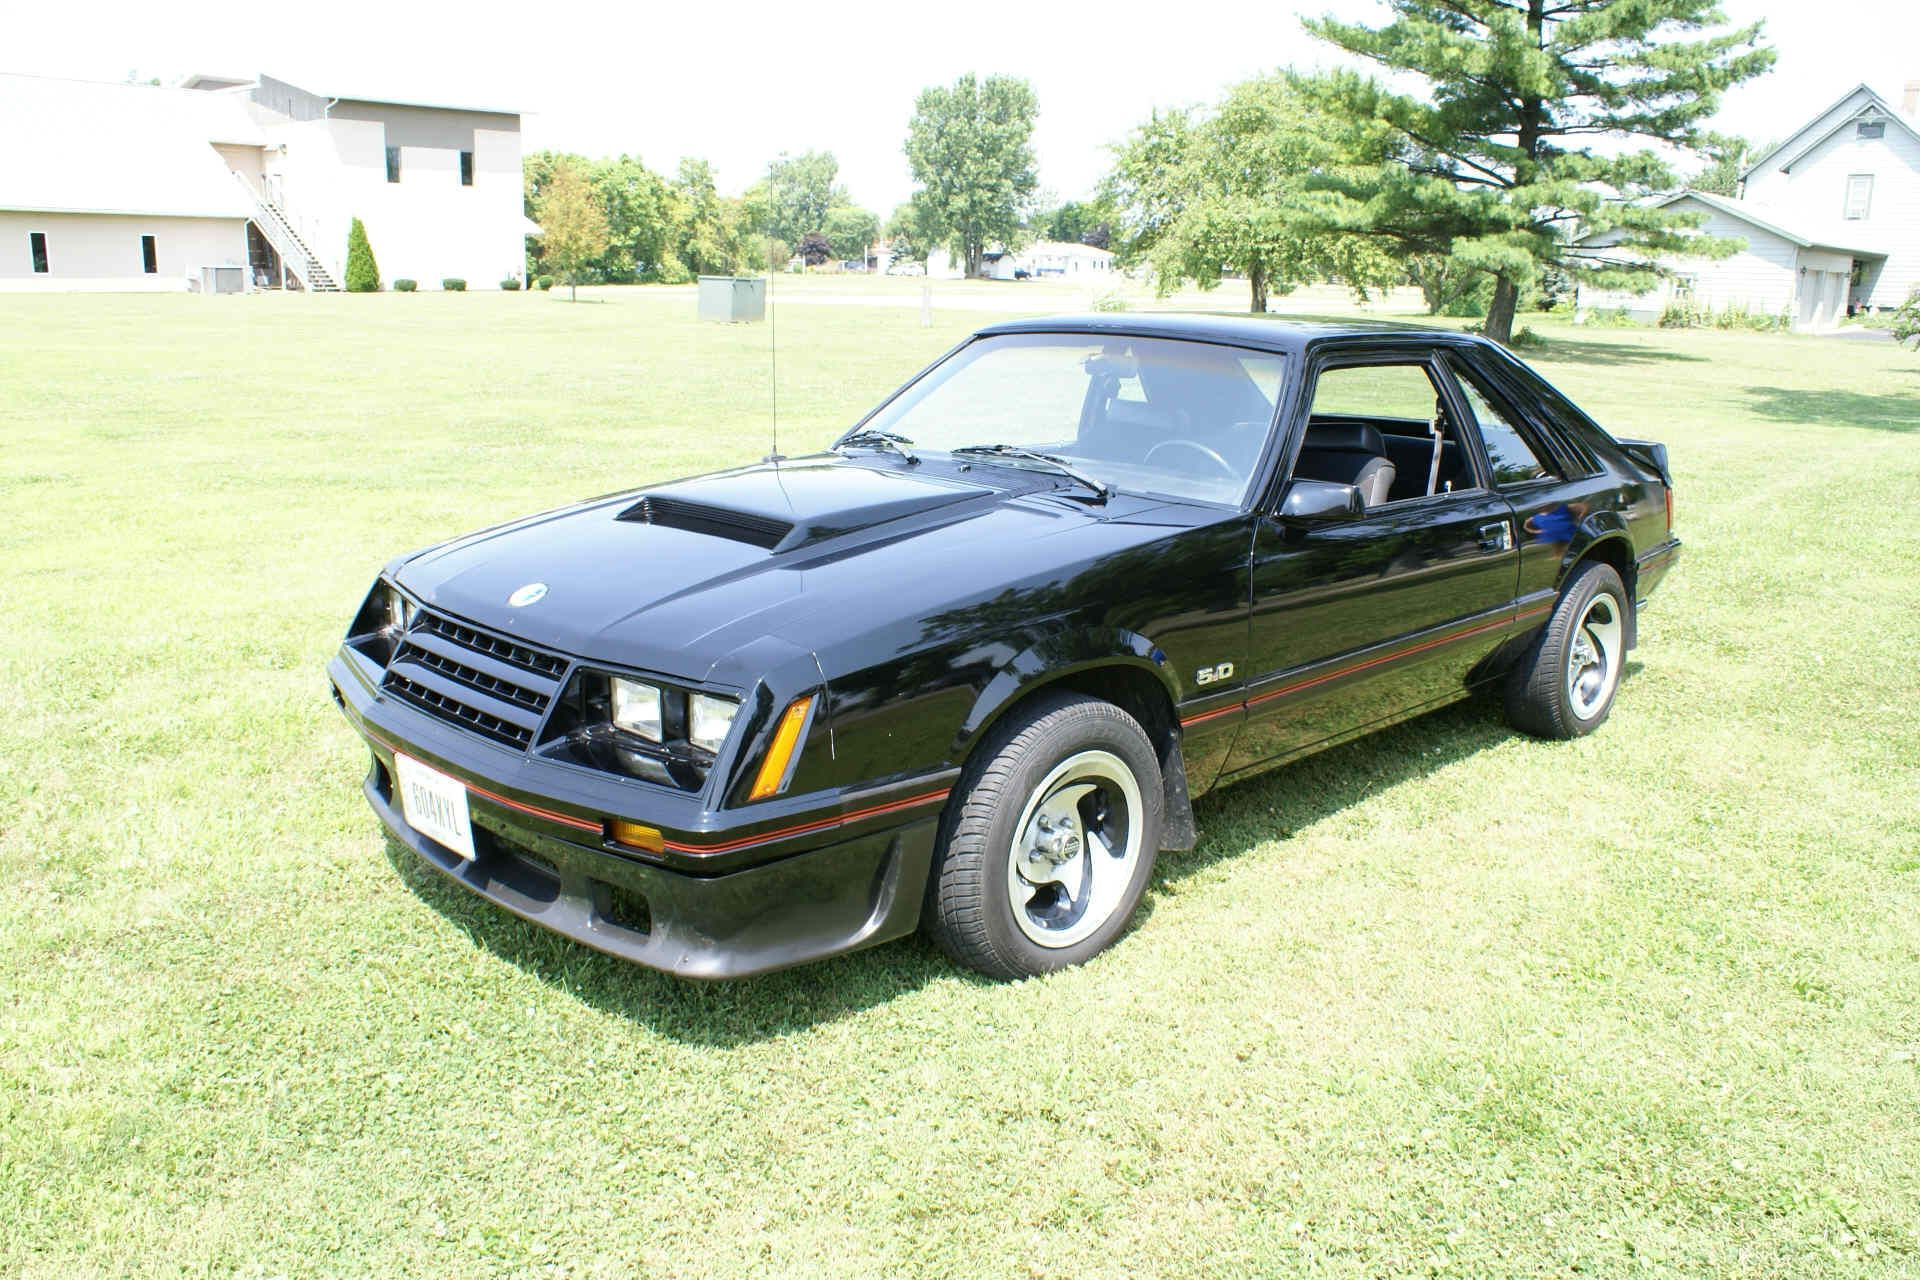 1982 mustang 5 0 mustang central pinterest ford mustang fox mustang and ford. Black Bedroom Furniture Sets. Home Design Ideas